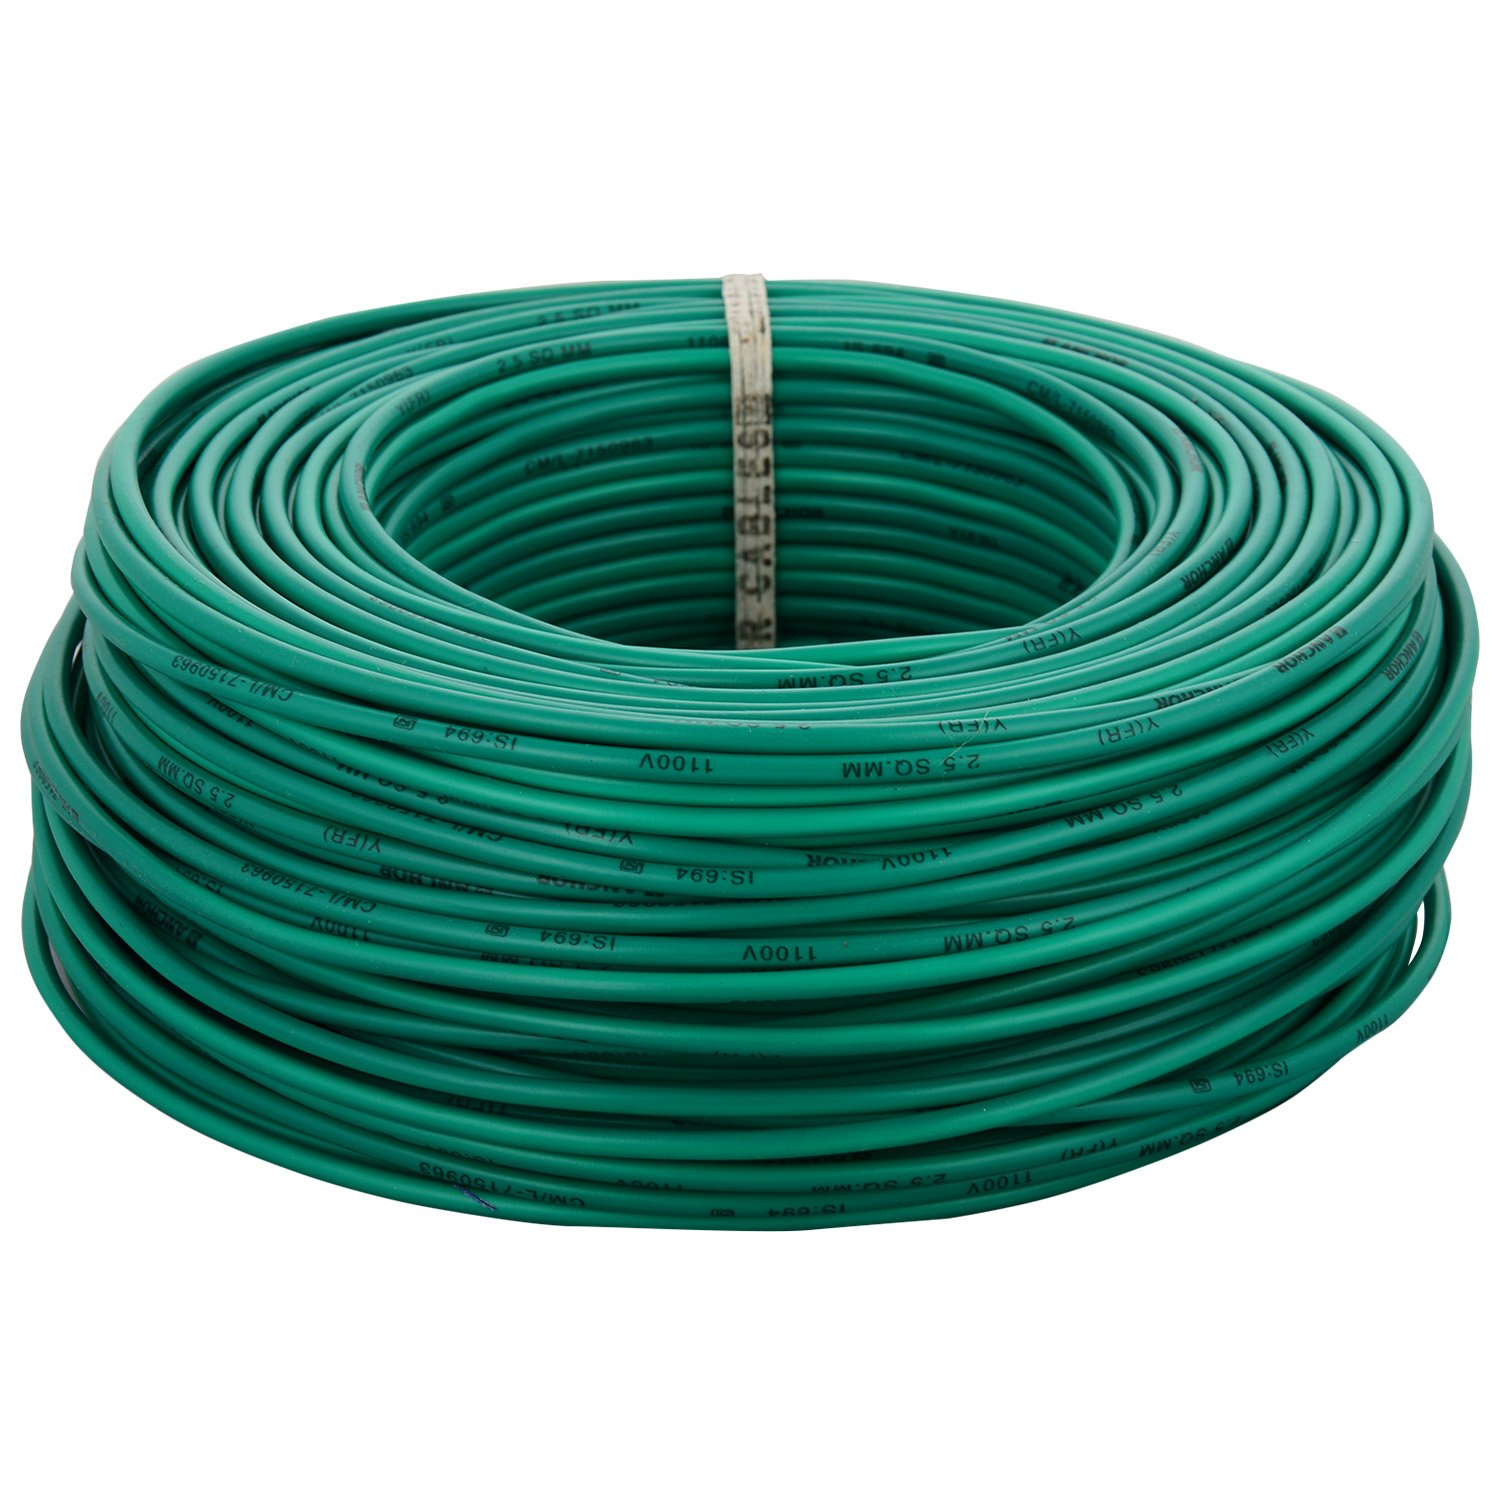 Anchor Insulated Copper Pvc Cable 25 Sq Mm Wire Green Wiring A House For Home Improvement